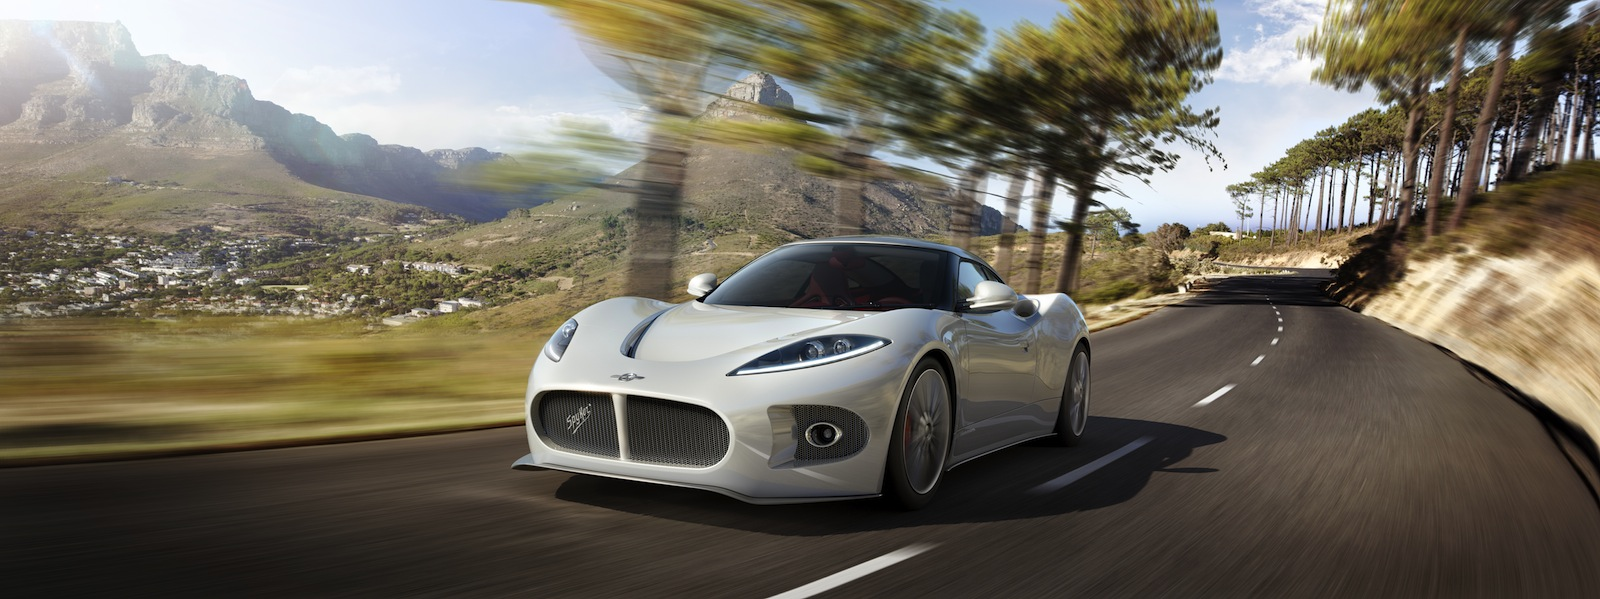 Is The Spyker A Future Collectable Classic Car?